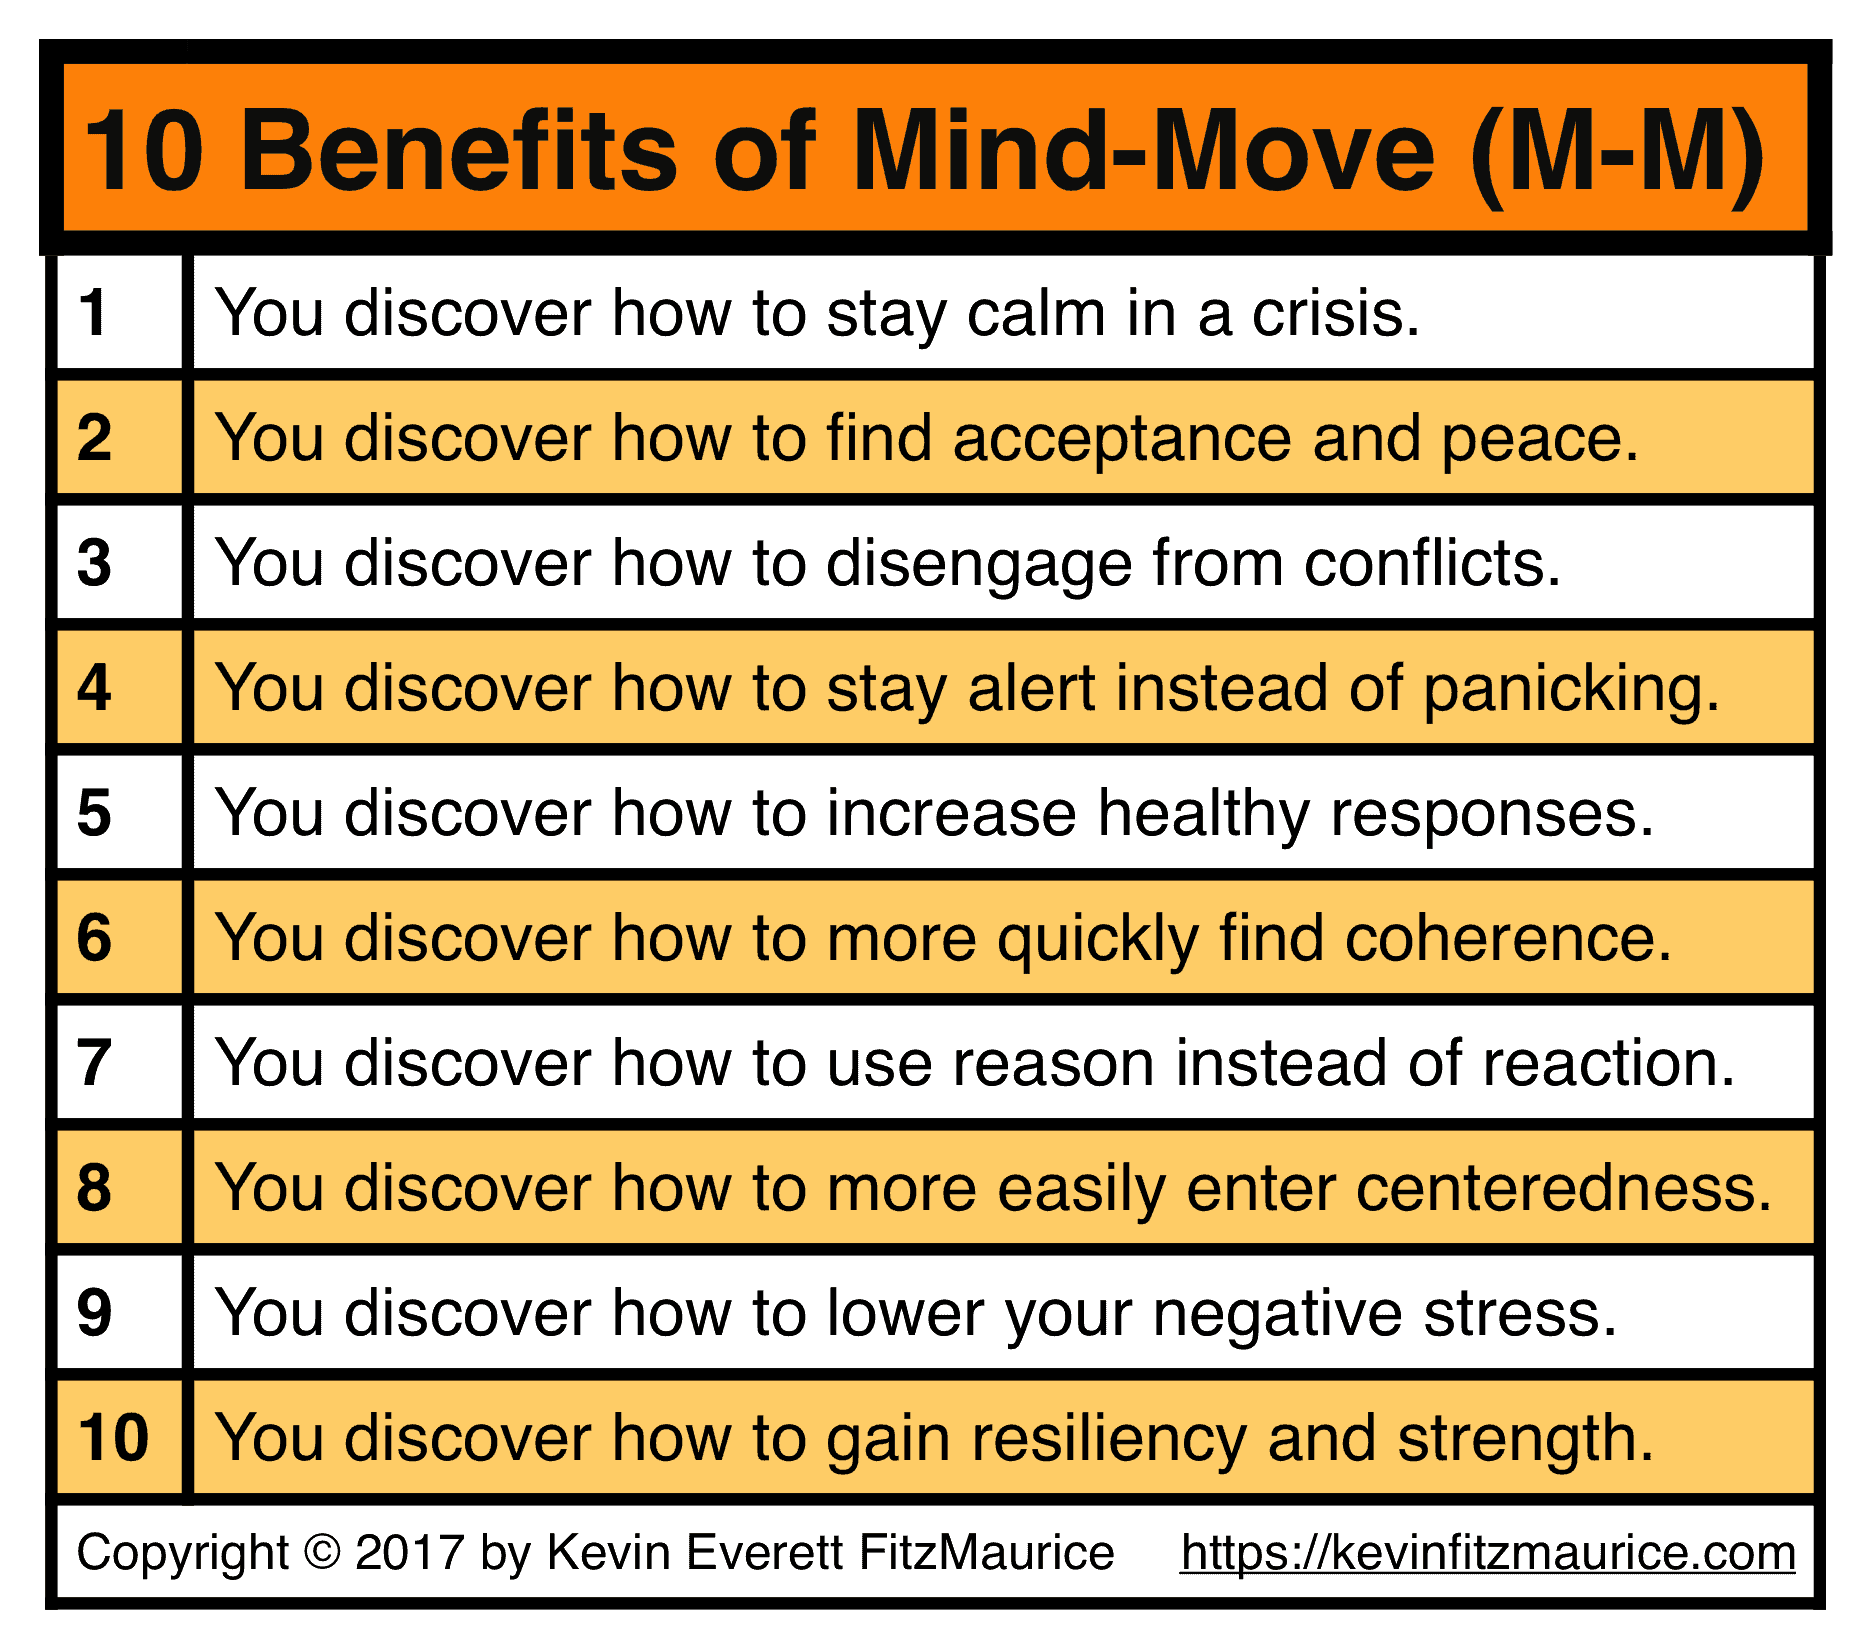 10 Benefits from Practicing Mind-Move